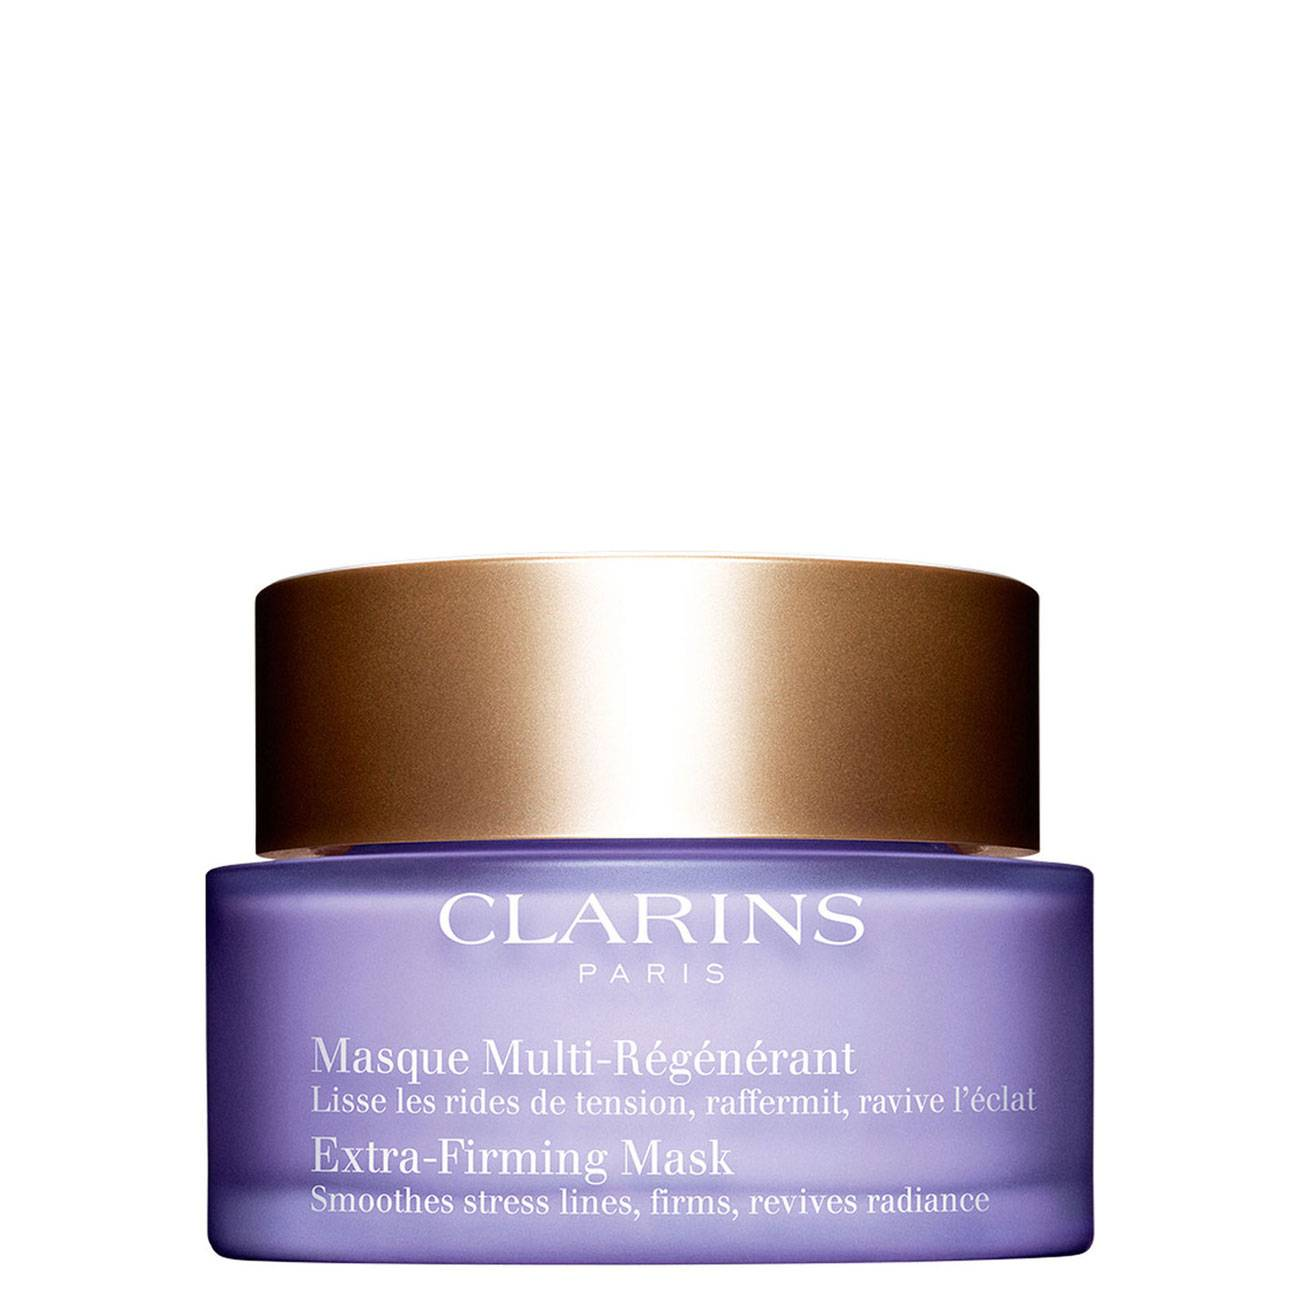 Extra-Firming Mask 75 Ml Clarins imagine 2021 bestvalue.eu